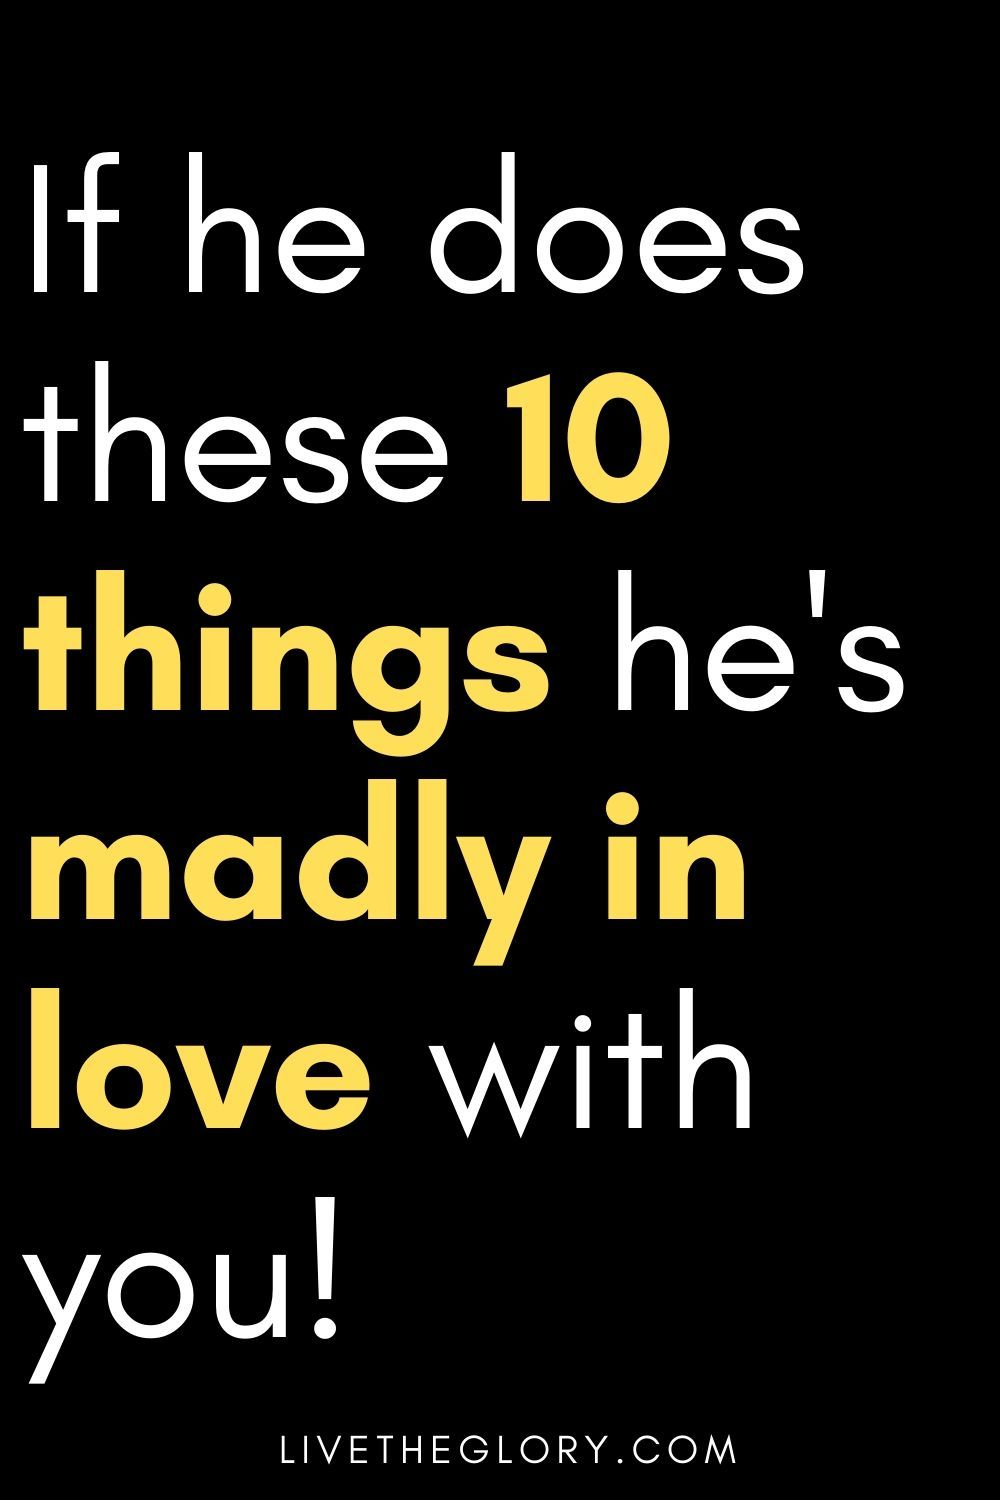 If he does these 10 things, he's madly in love wit